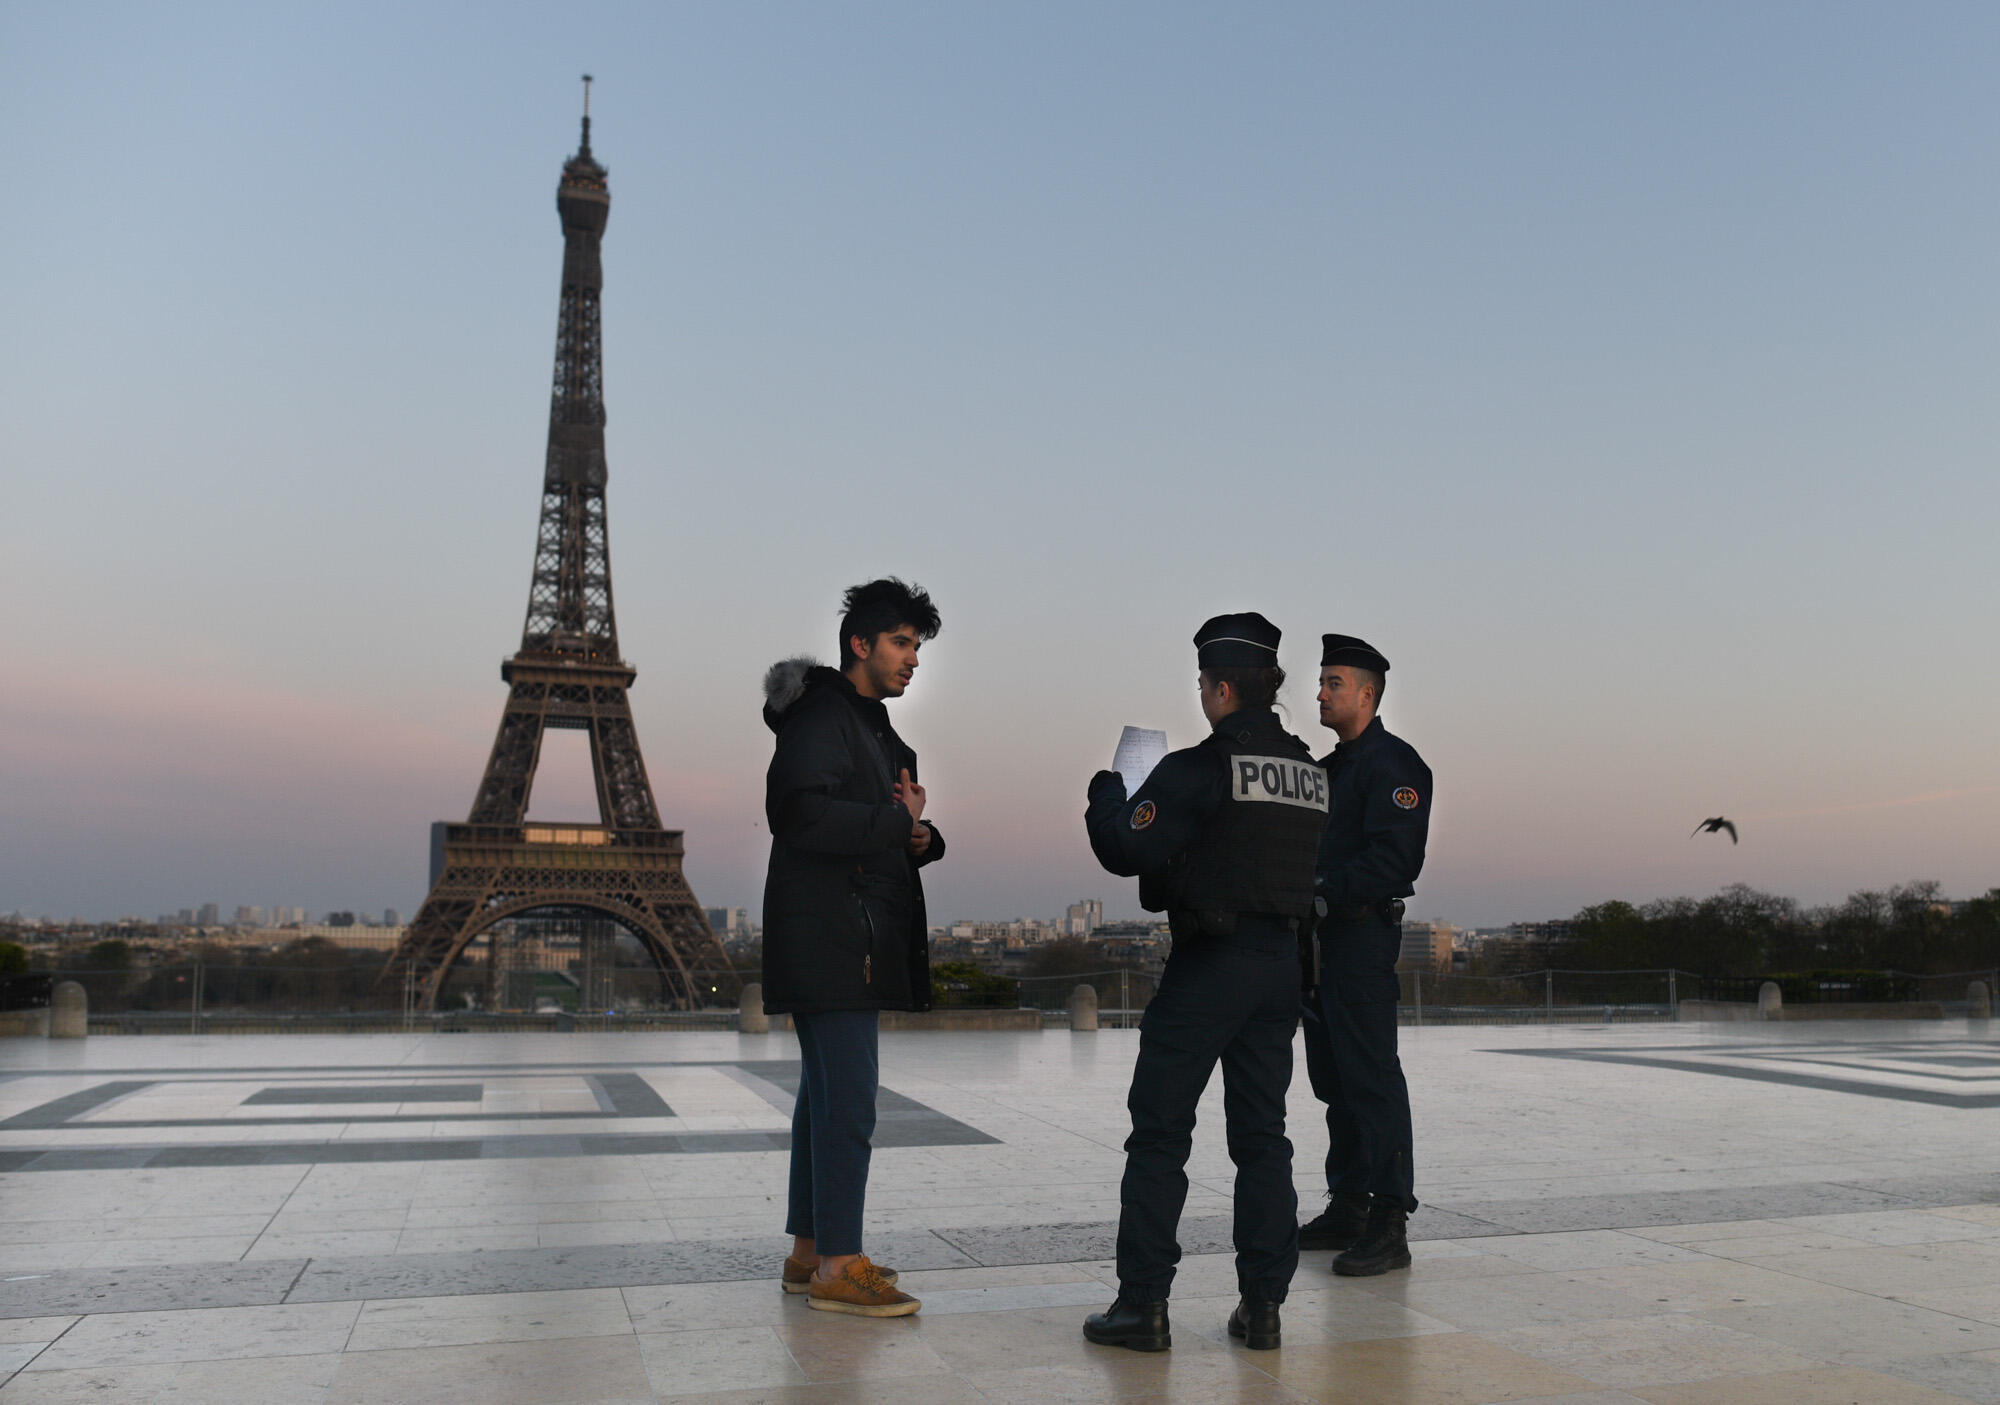 The Trocadero esplanadeoverlookingthe EiffelTower is eerily deserted. Several police officers patrol the windswept square, which is usually teeming with tourists and illegal streetvendors,checking people'spermission forms: Anyone on the streets must now carry a signed document stating their reason for notremainingat home.